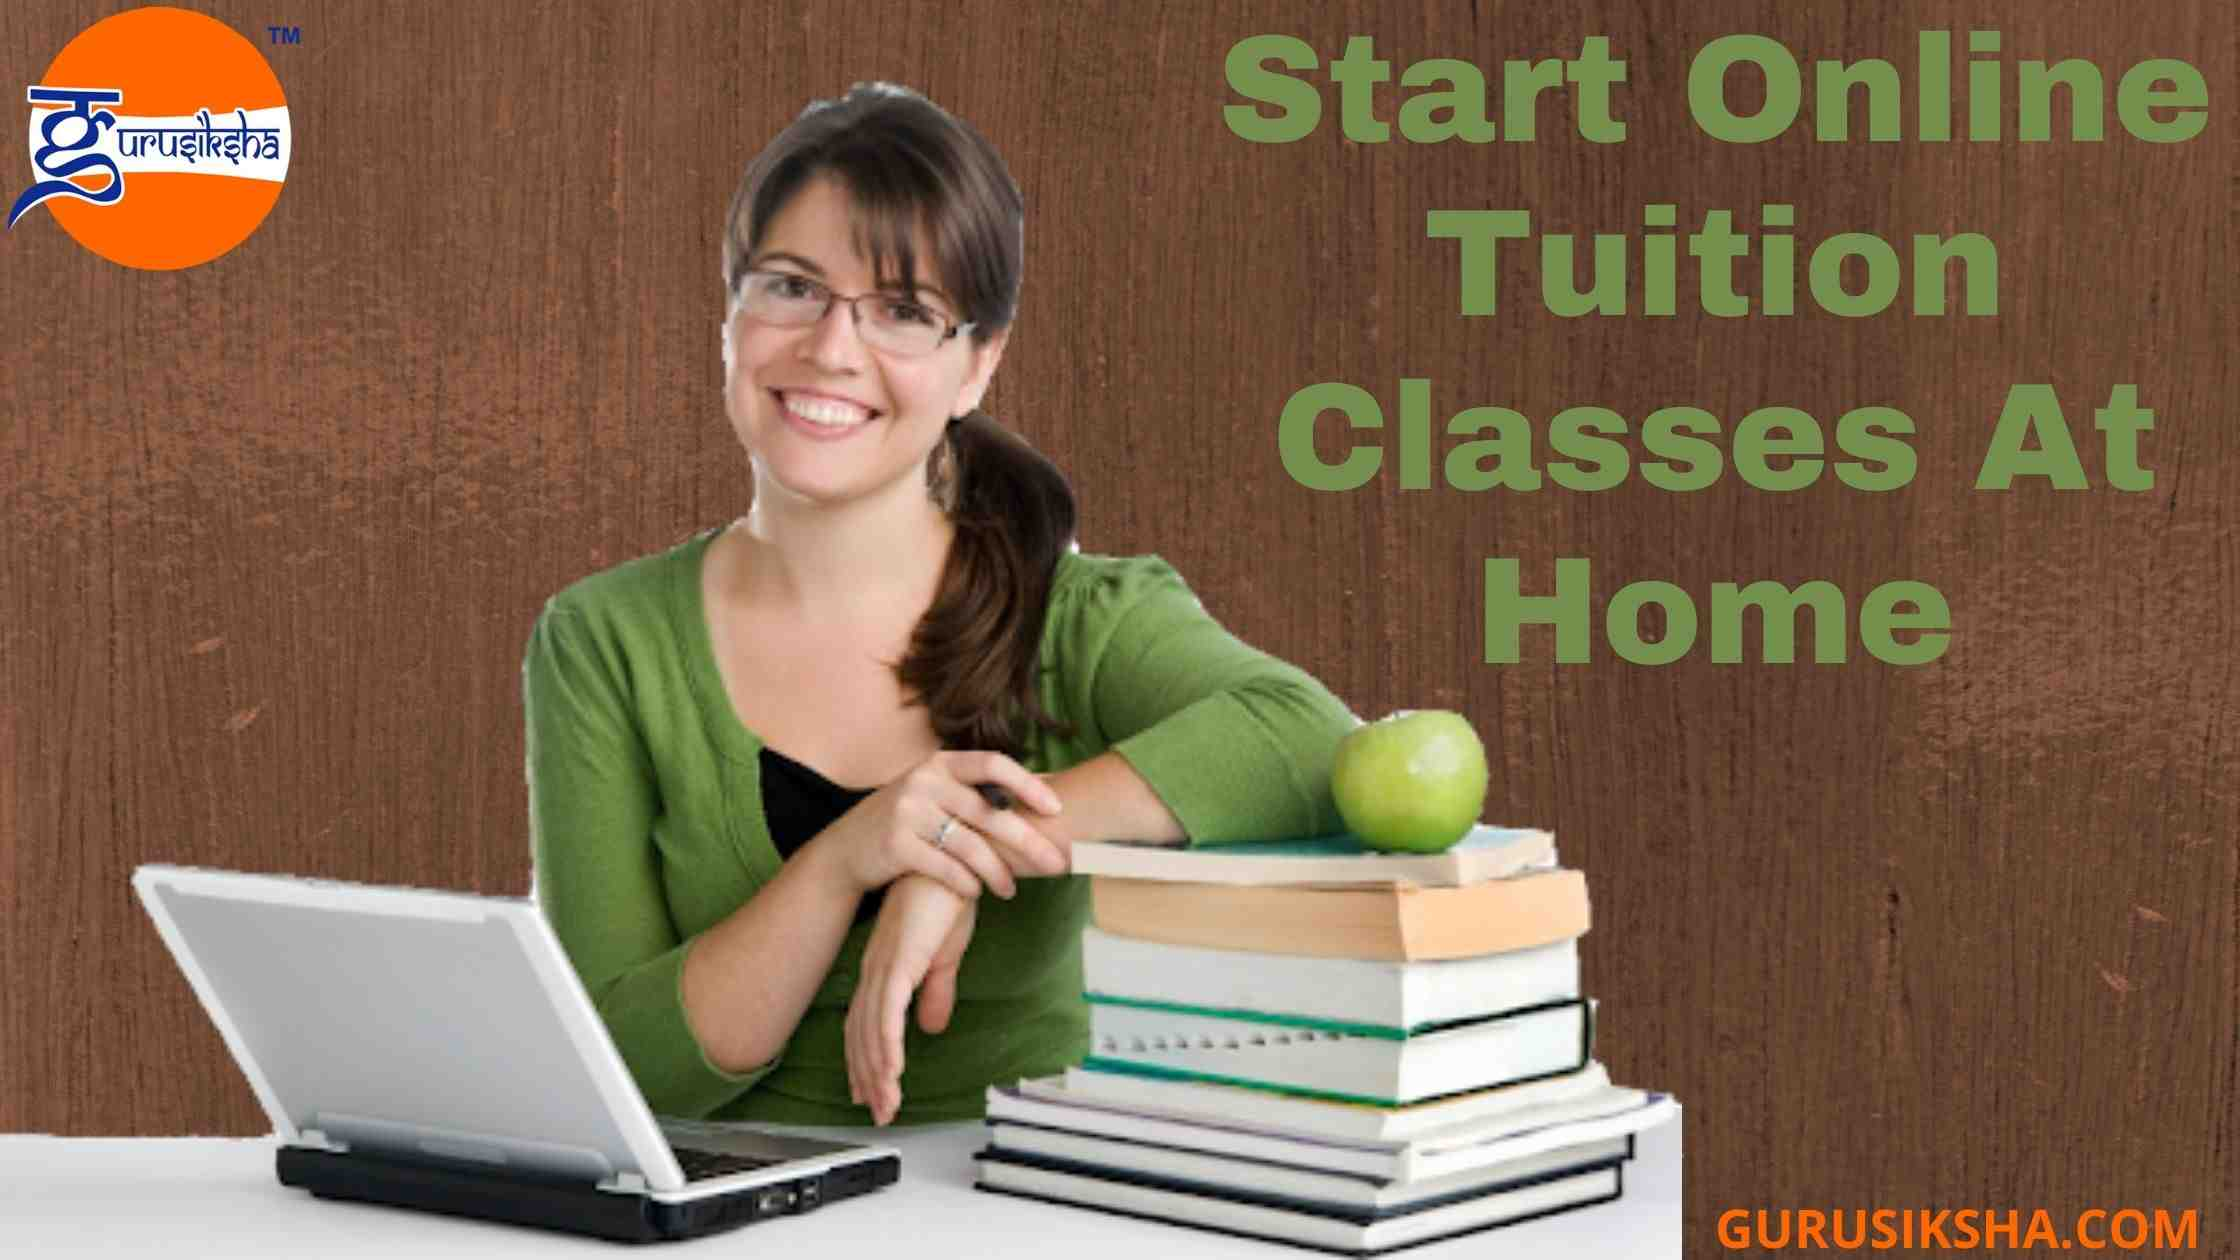 How To Start Online Tuition Classes At Home